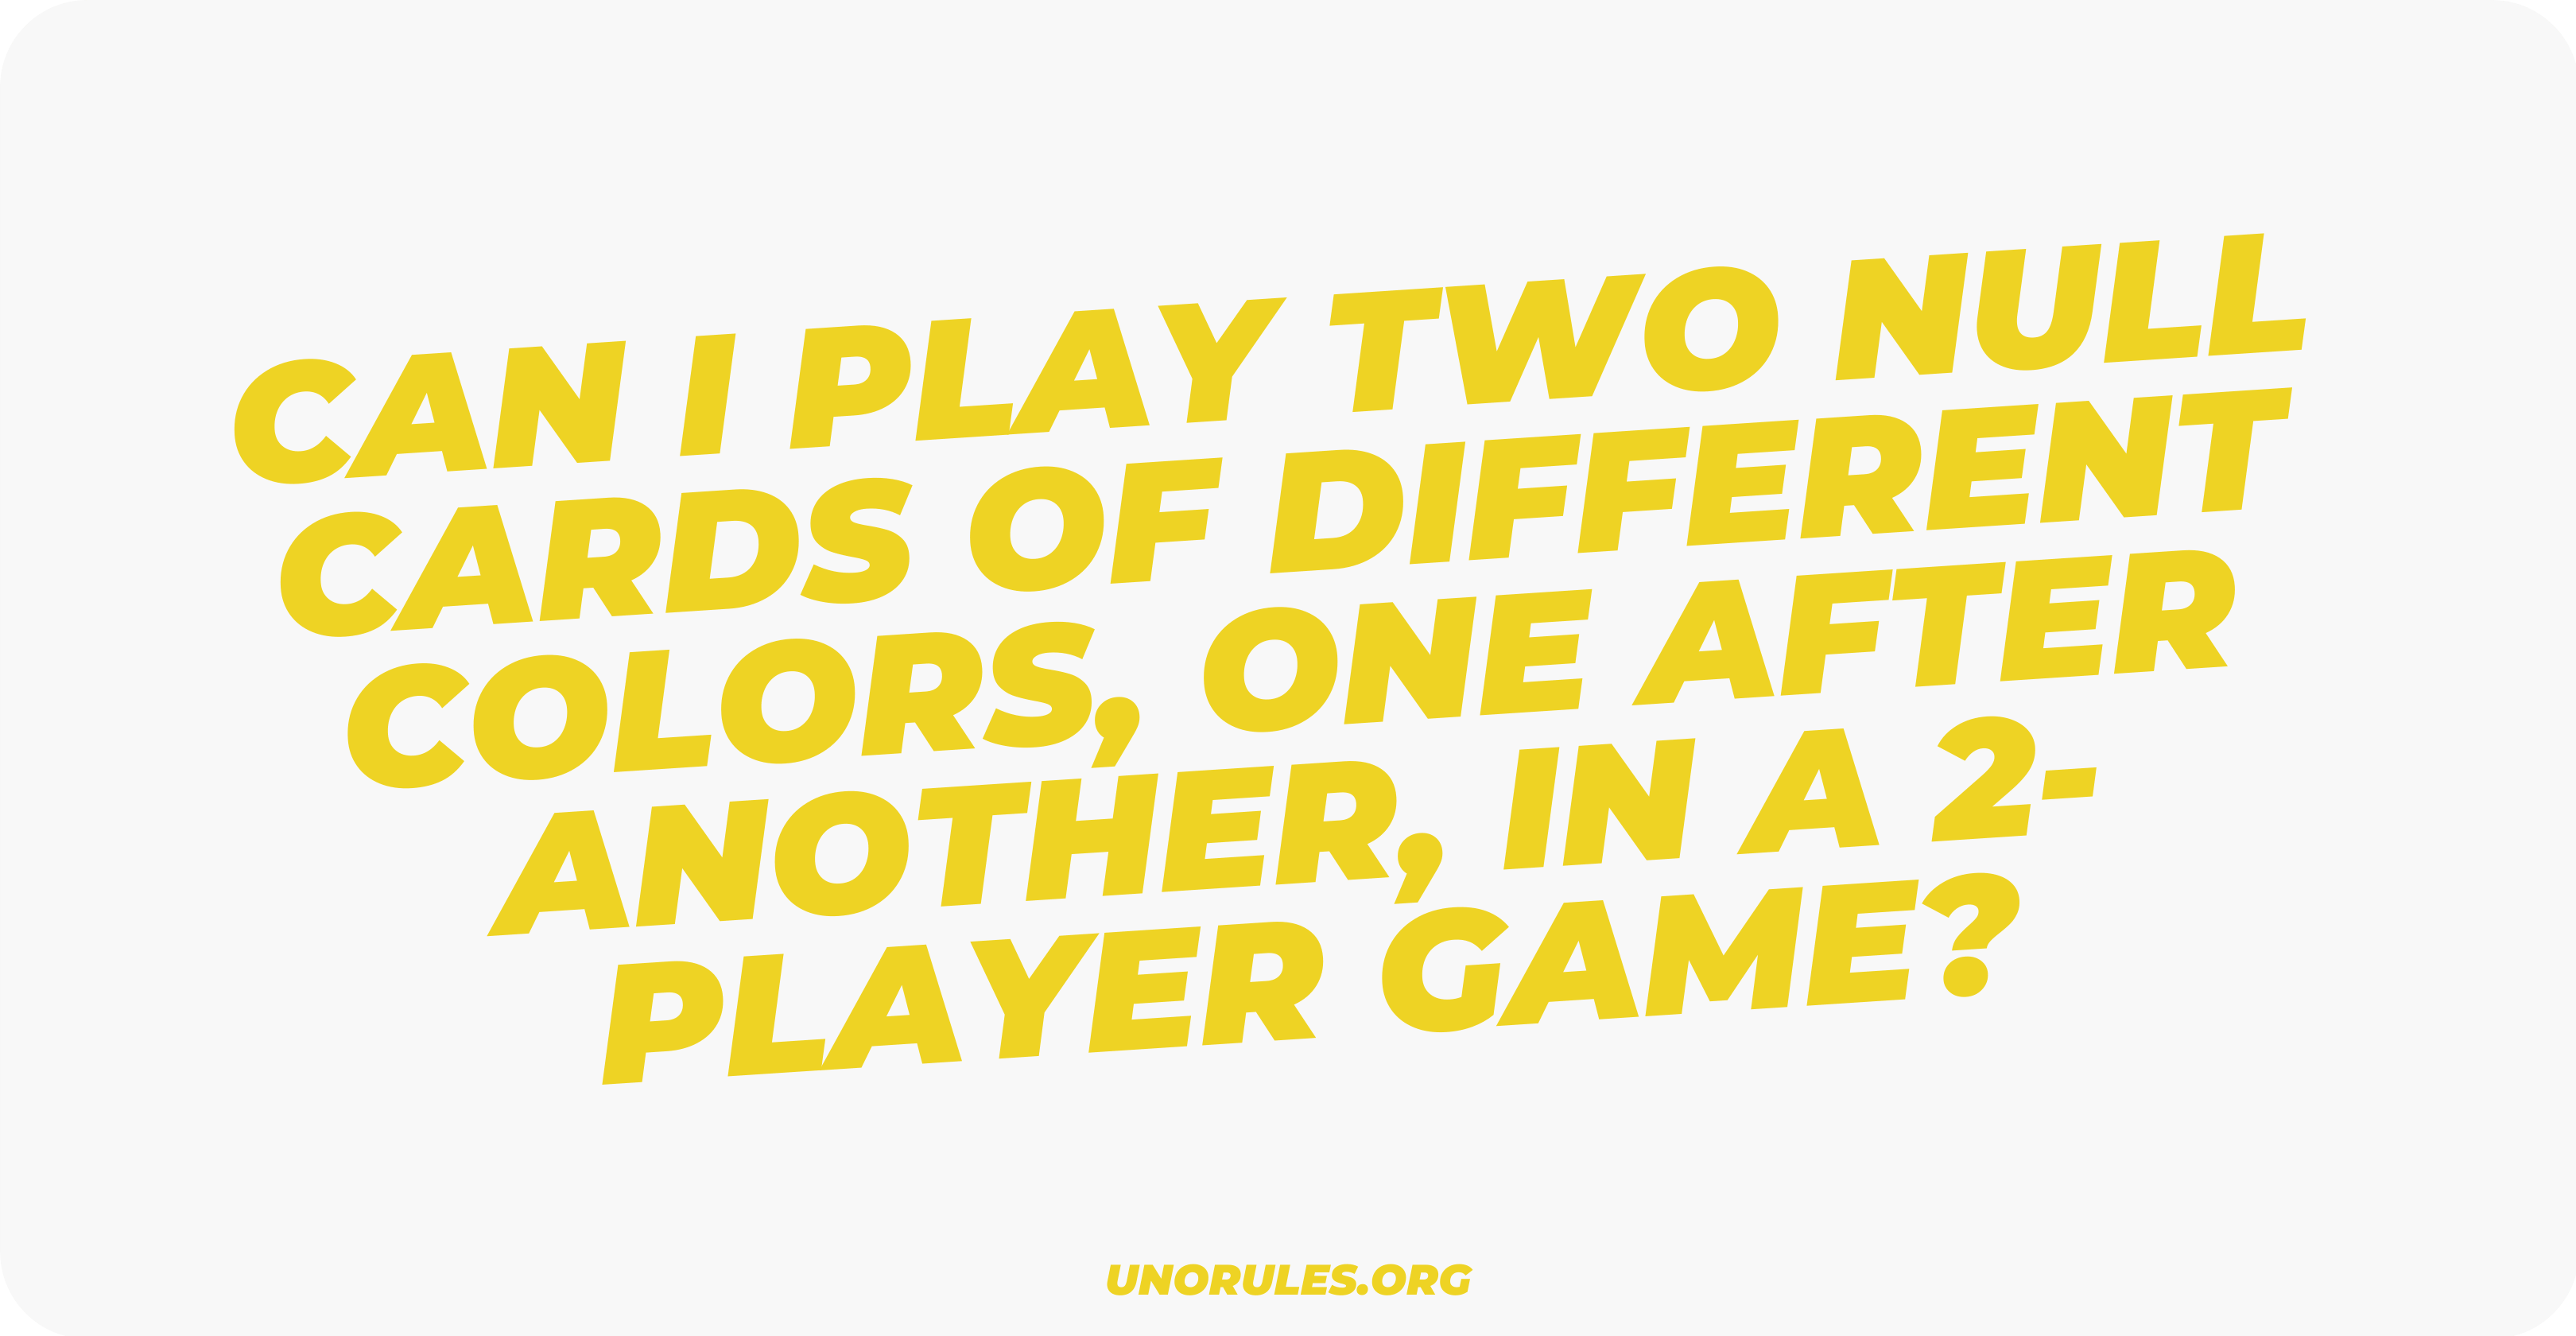 Can I play two null cards of different colors, one after another, in a 2-player game